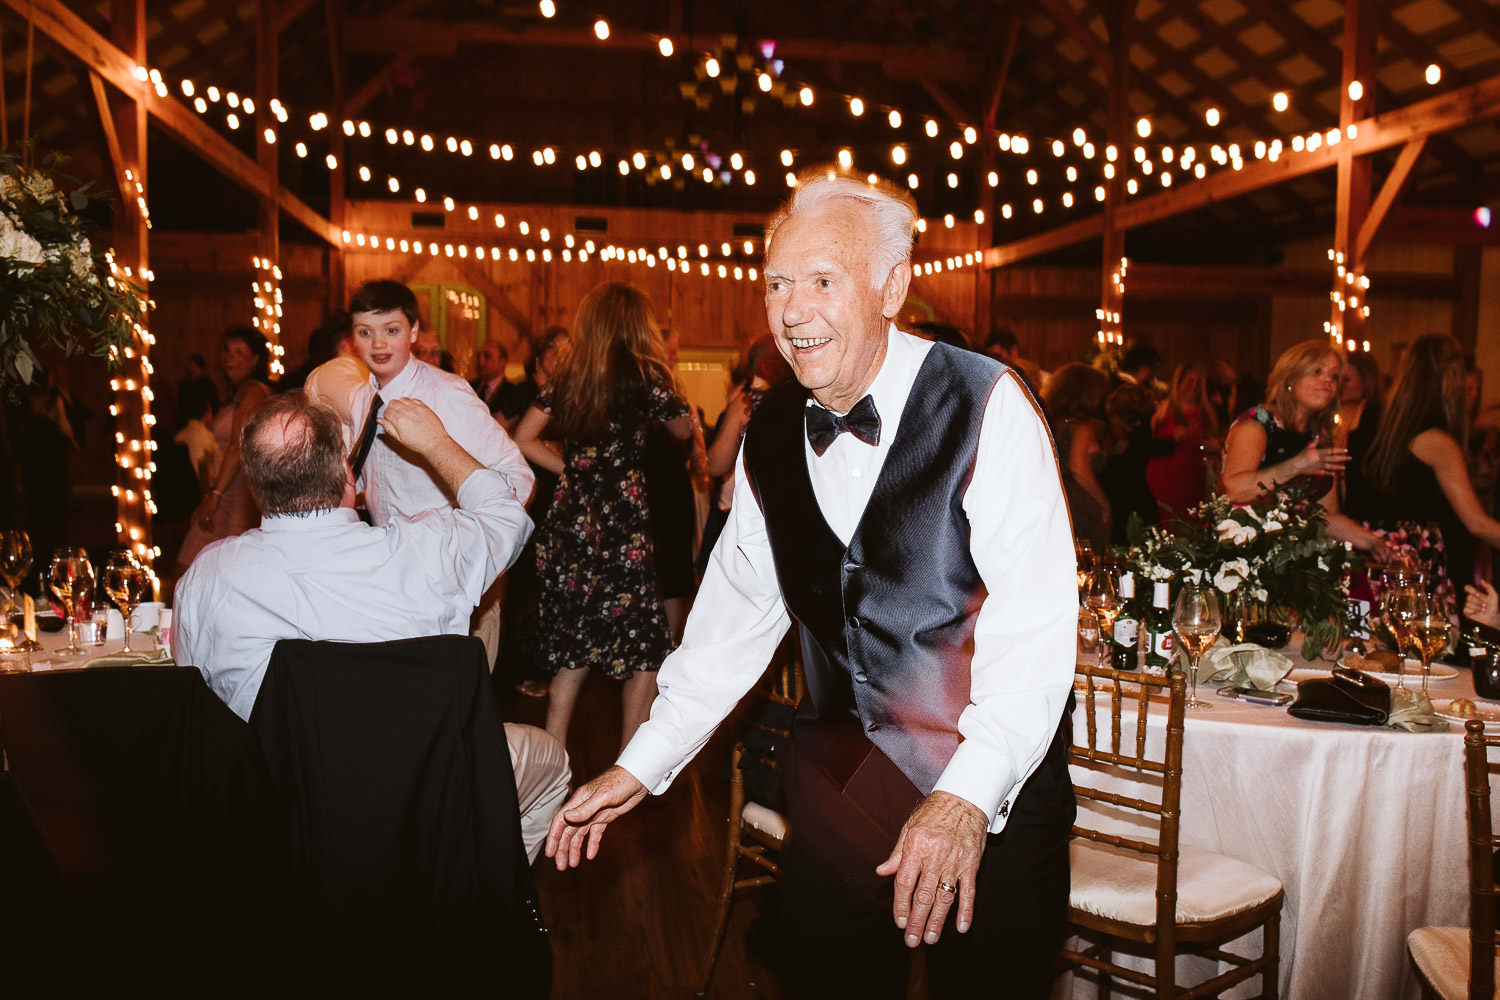 grandpa dancing at wedding reception